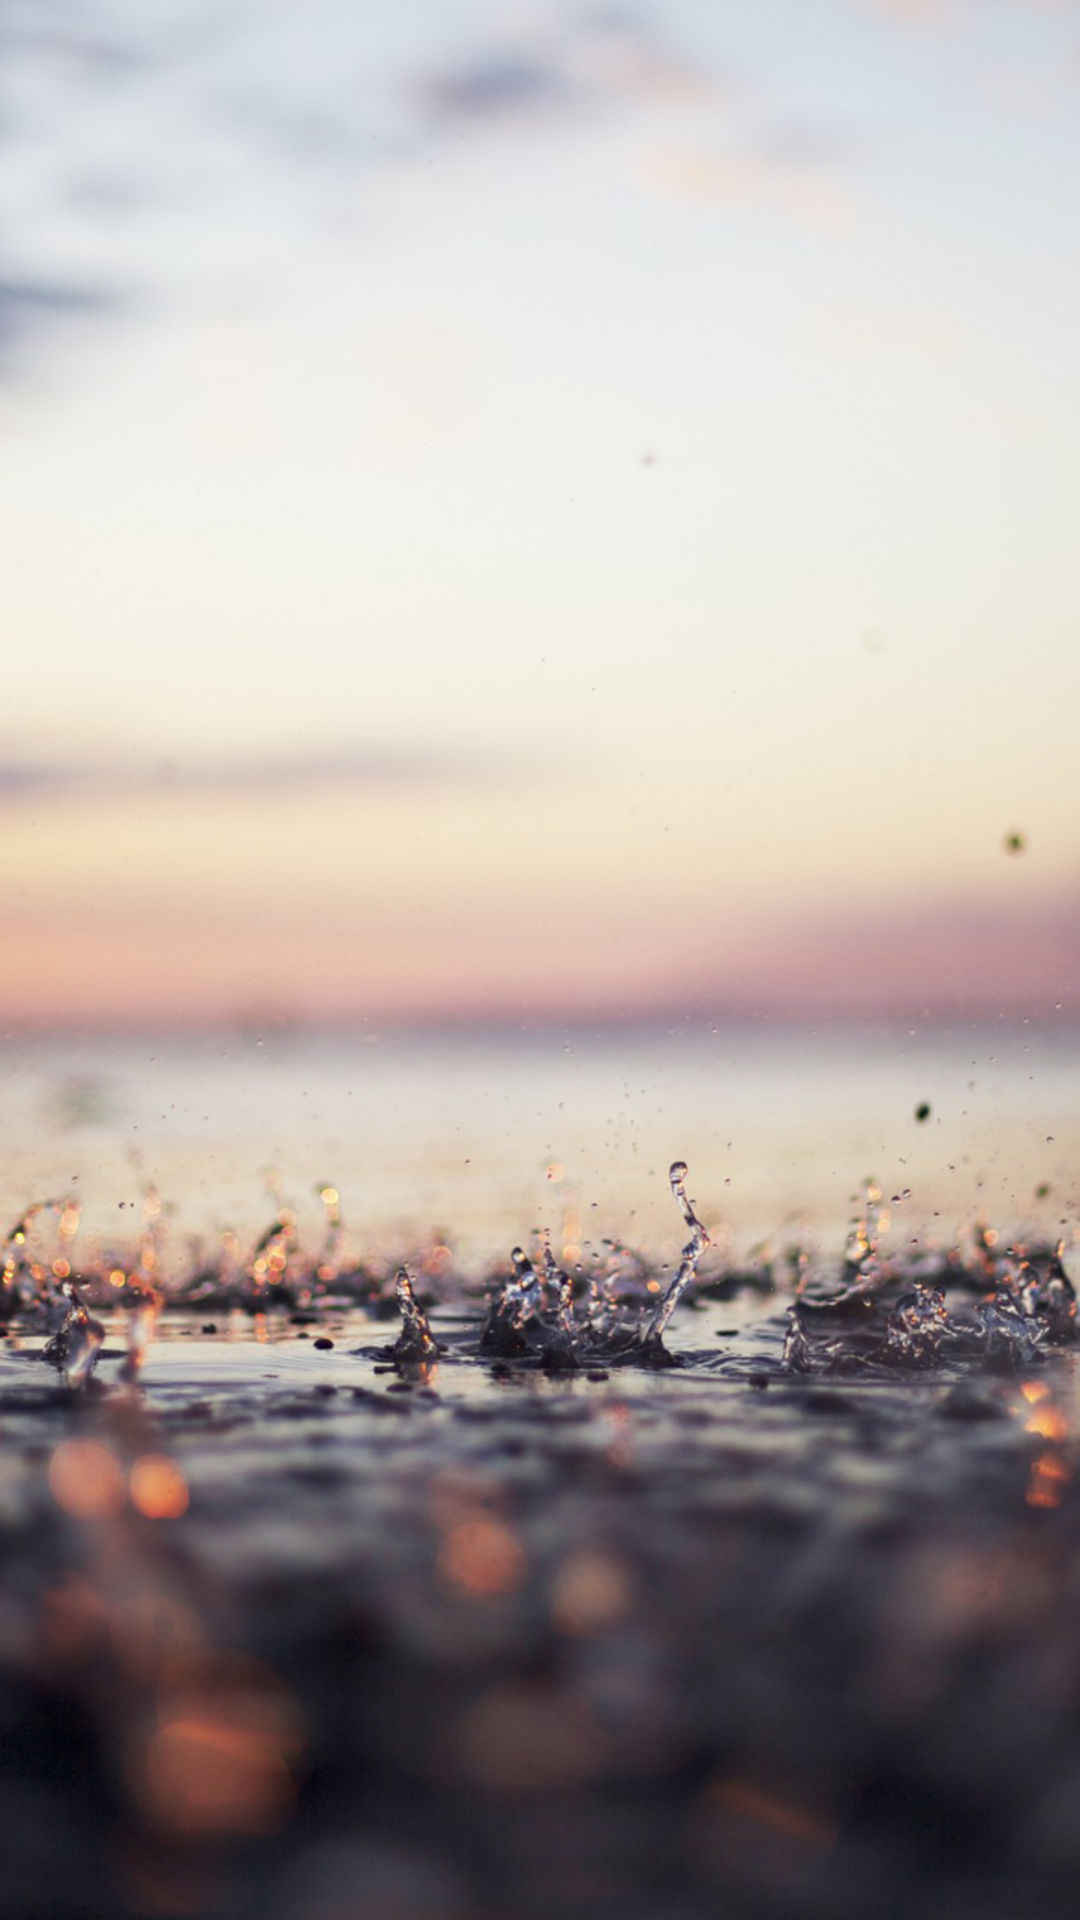 Rain drops - iPhone 6/6Plus background wallpapers Nature | @mobile9